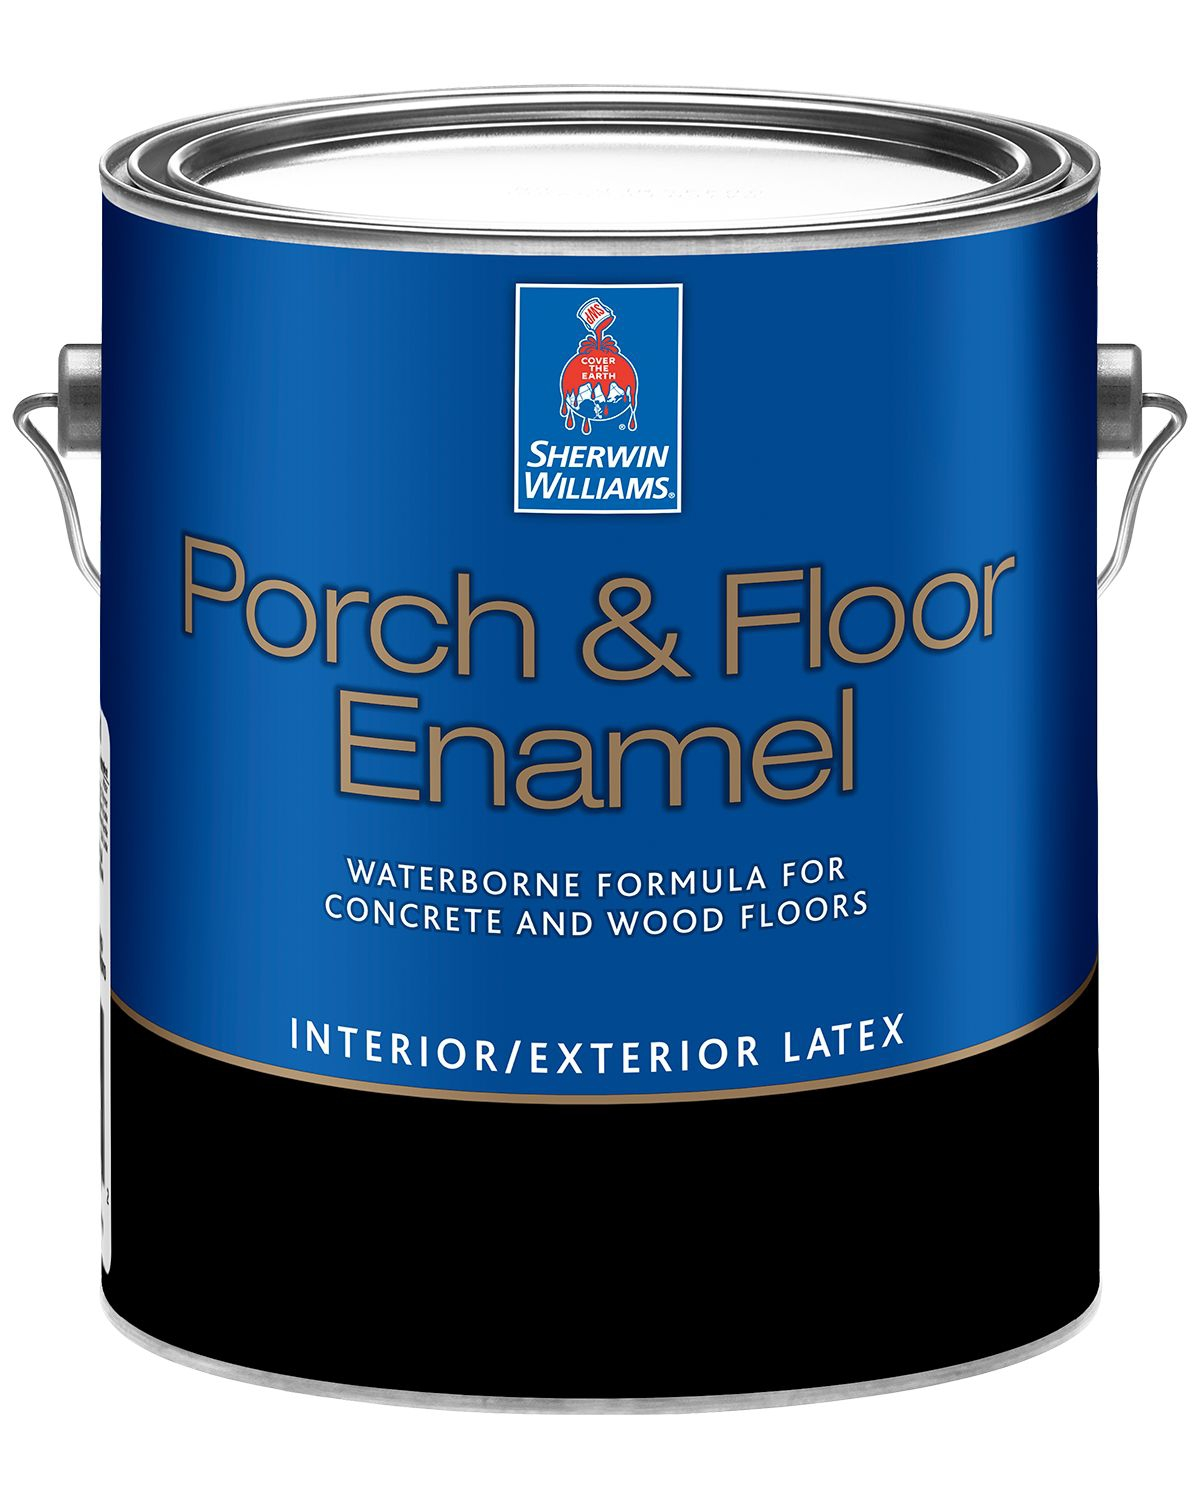 Porch Floor Enamel Sherwin Williams